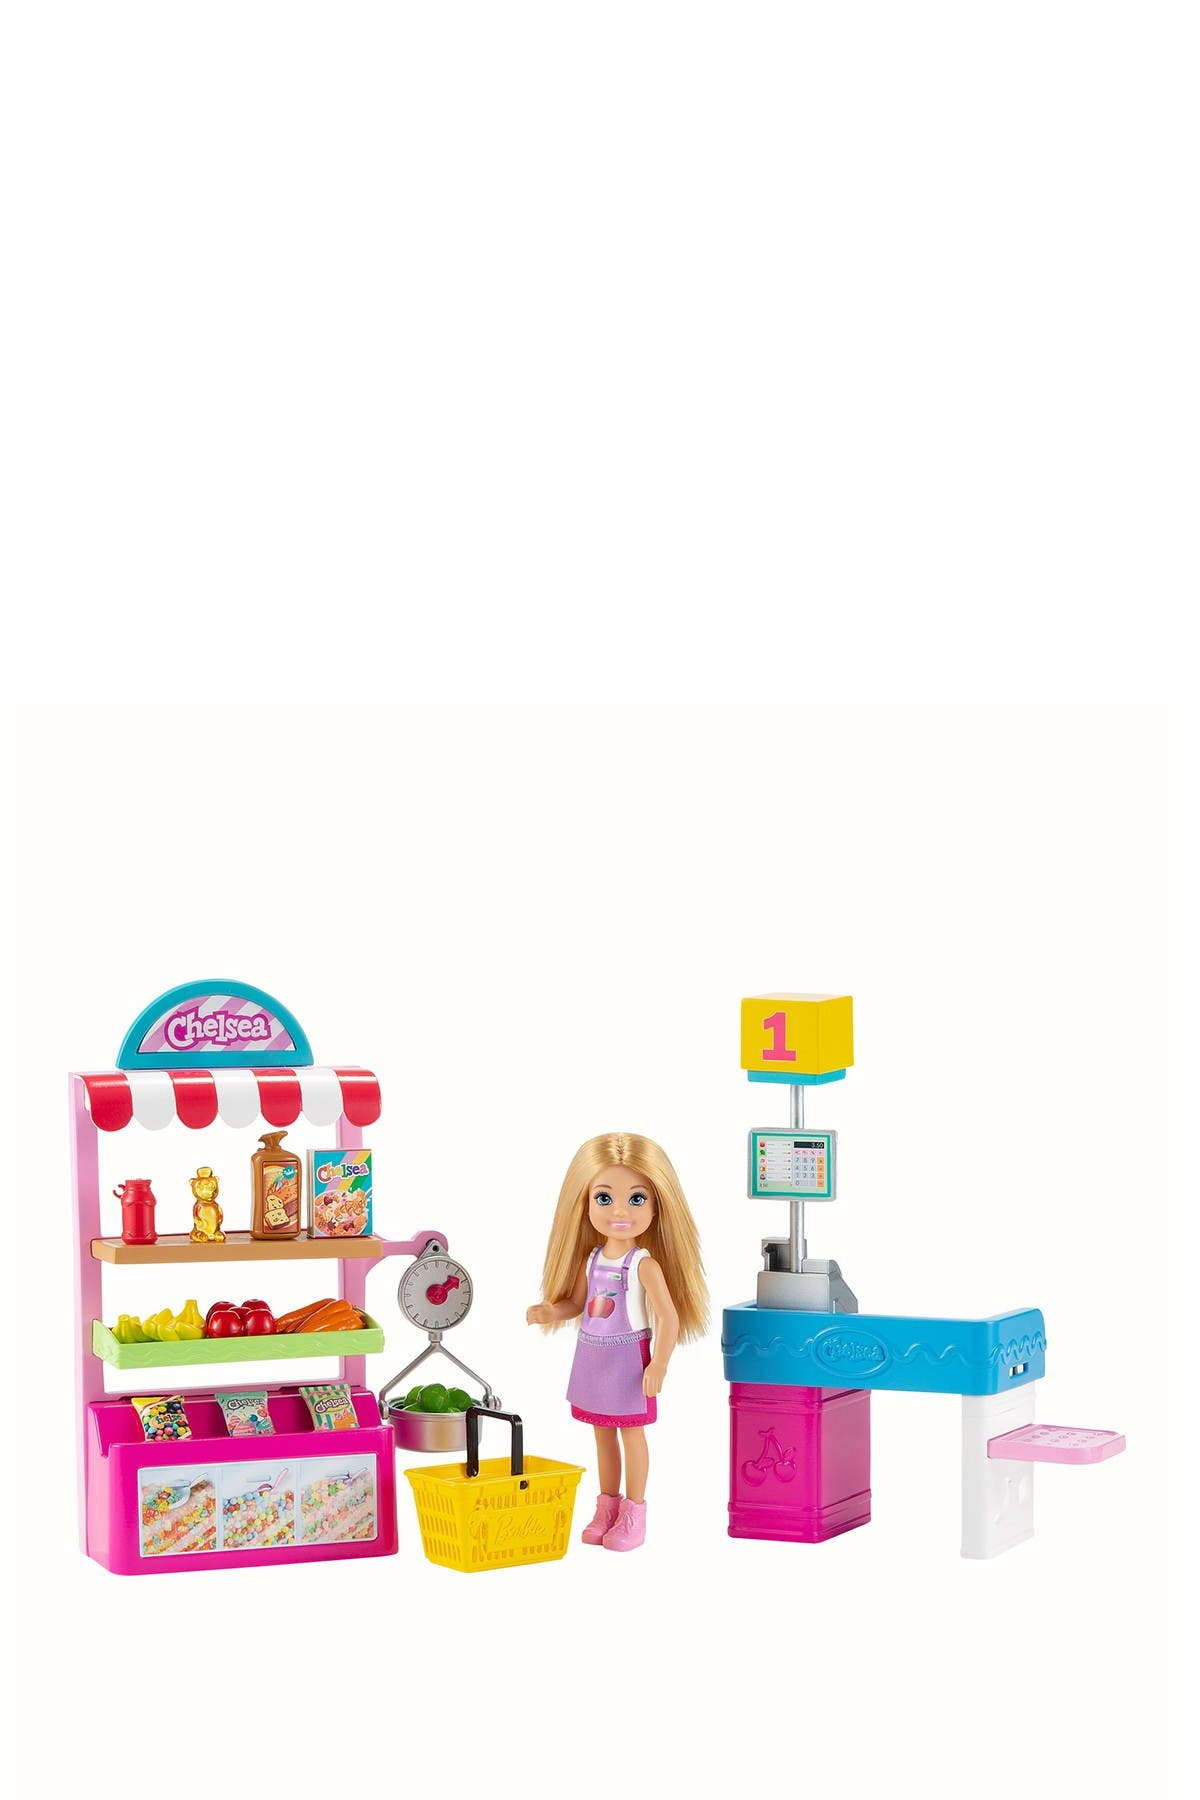 Image of Mattel Barbie® Chelsea® Can Be Snack Stand Playset with Blonde Chelsea® Doll